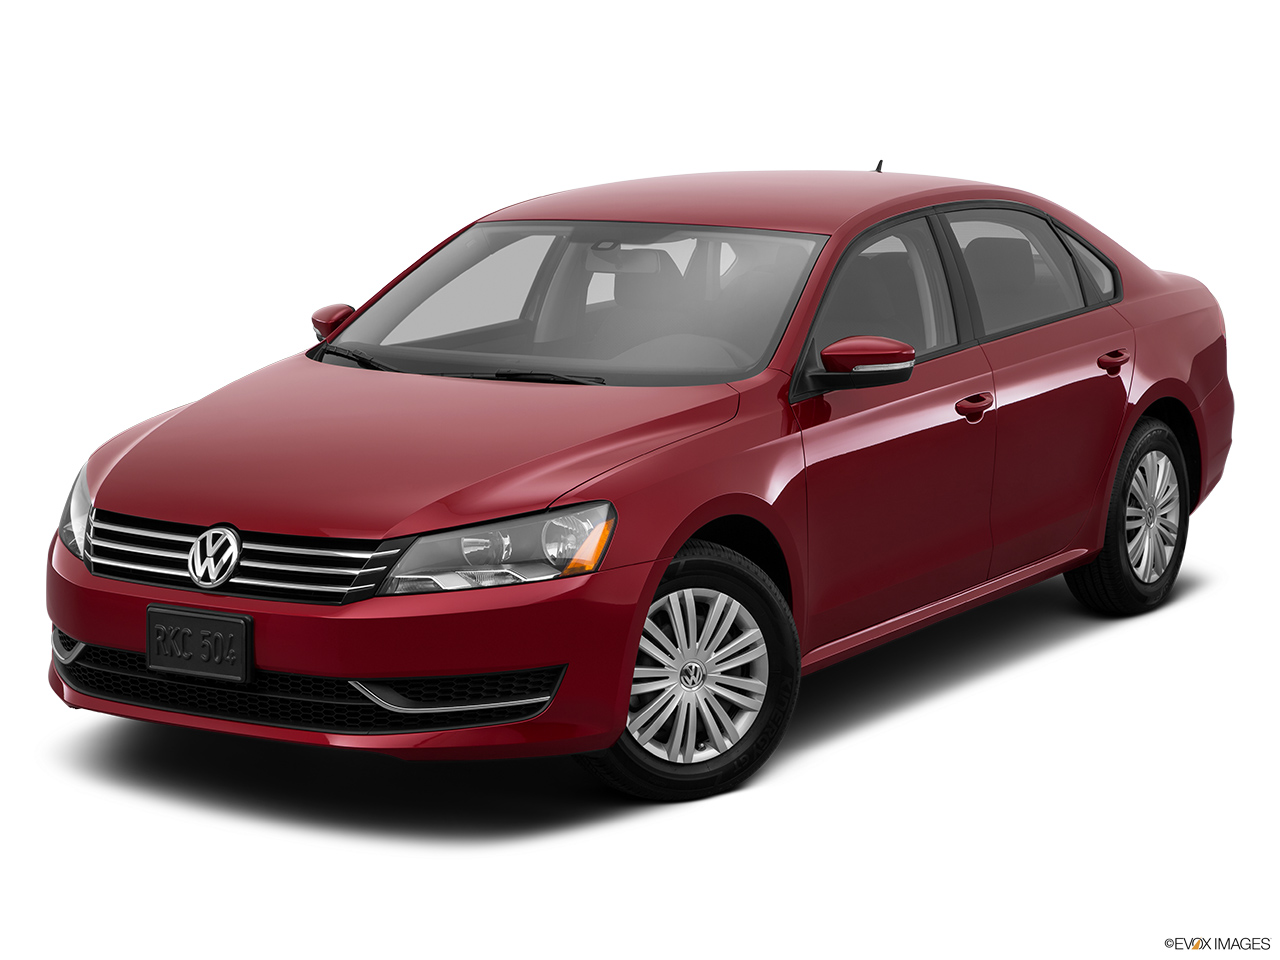 2015 volkswagen passat 1 8t auto limited edition sedan. Black Bedroom Furniture Sets. Home Design Ideas